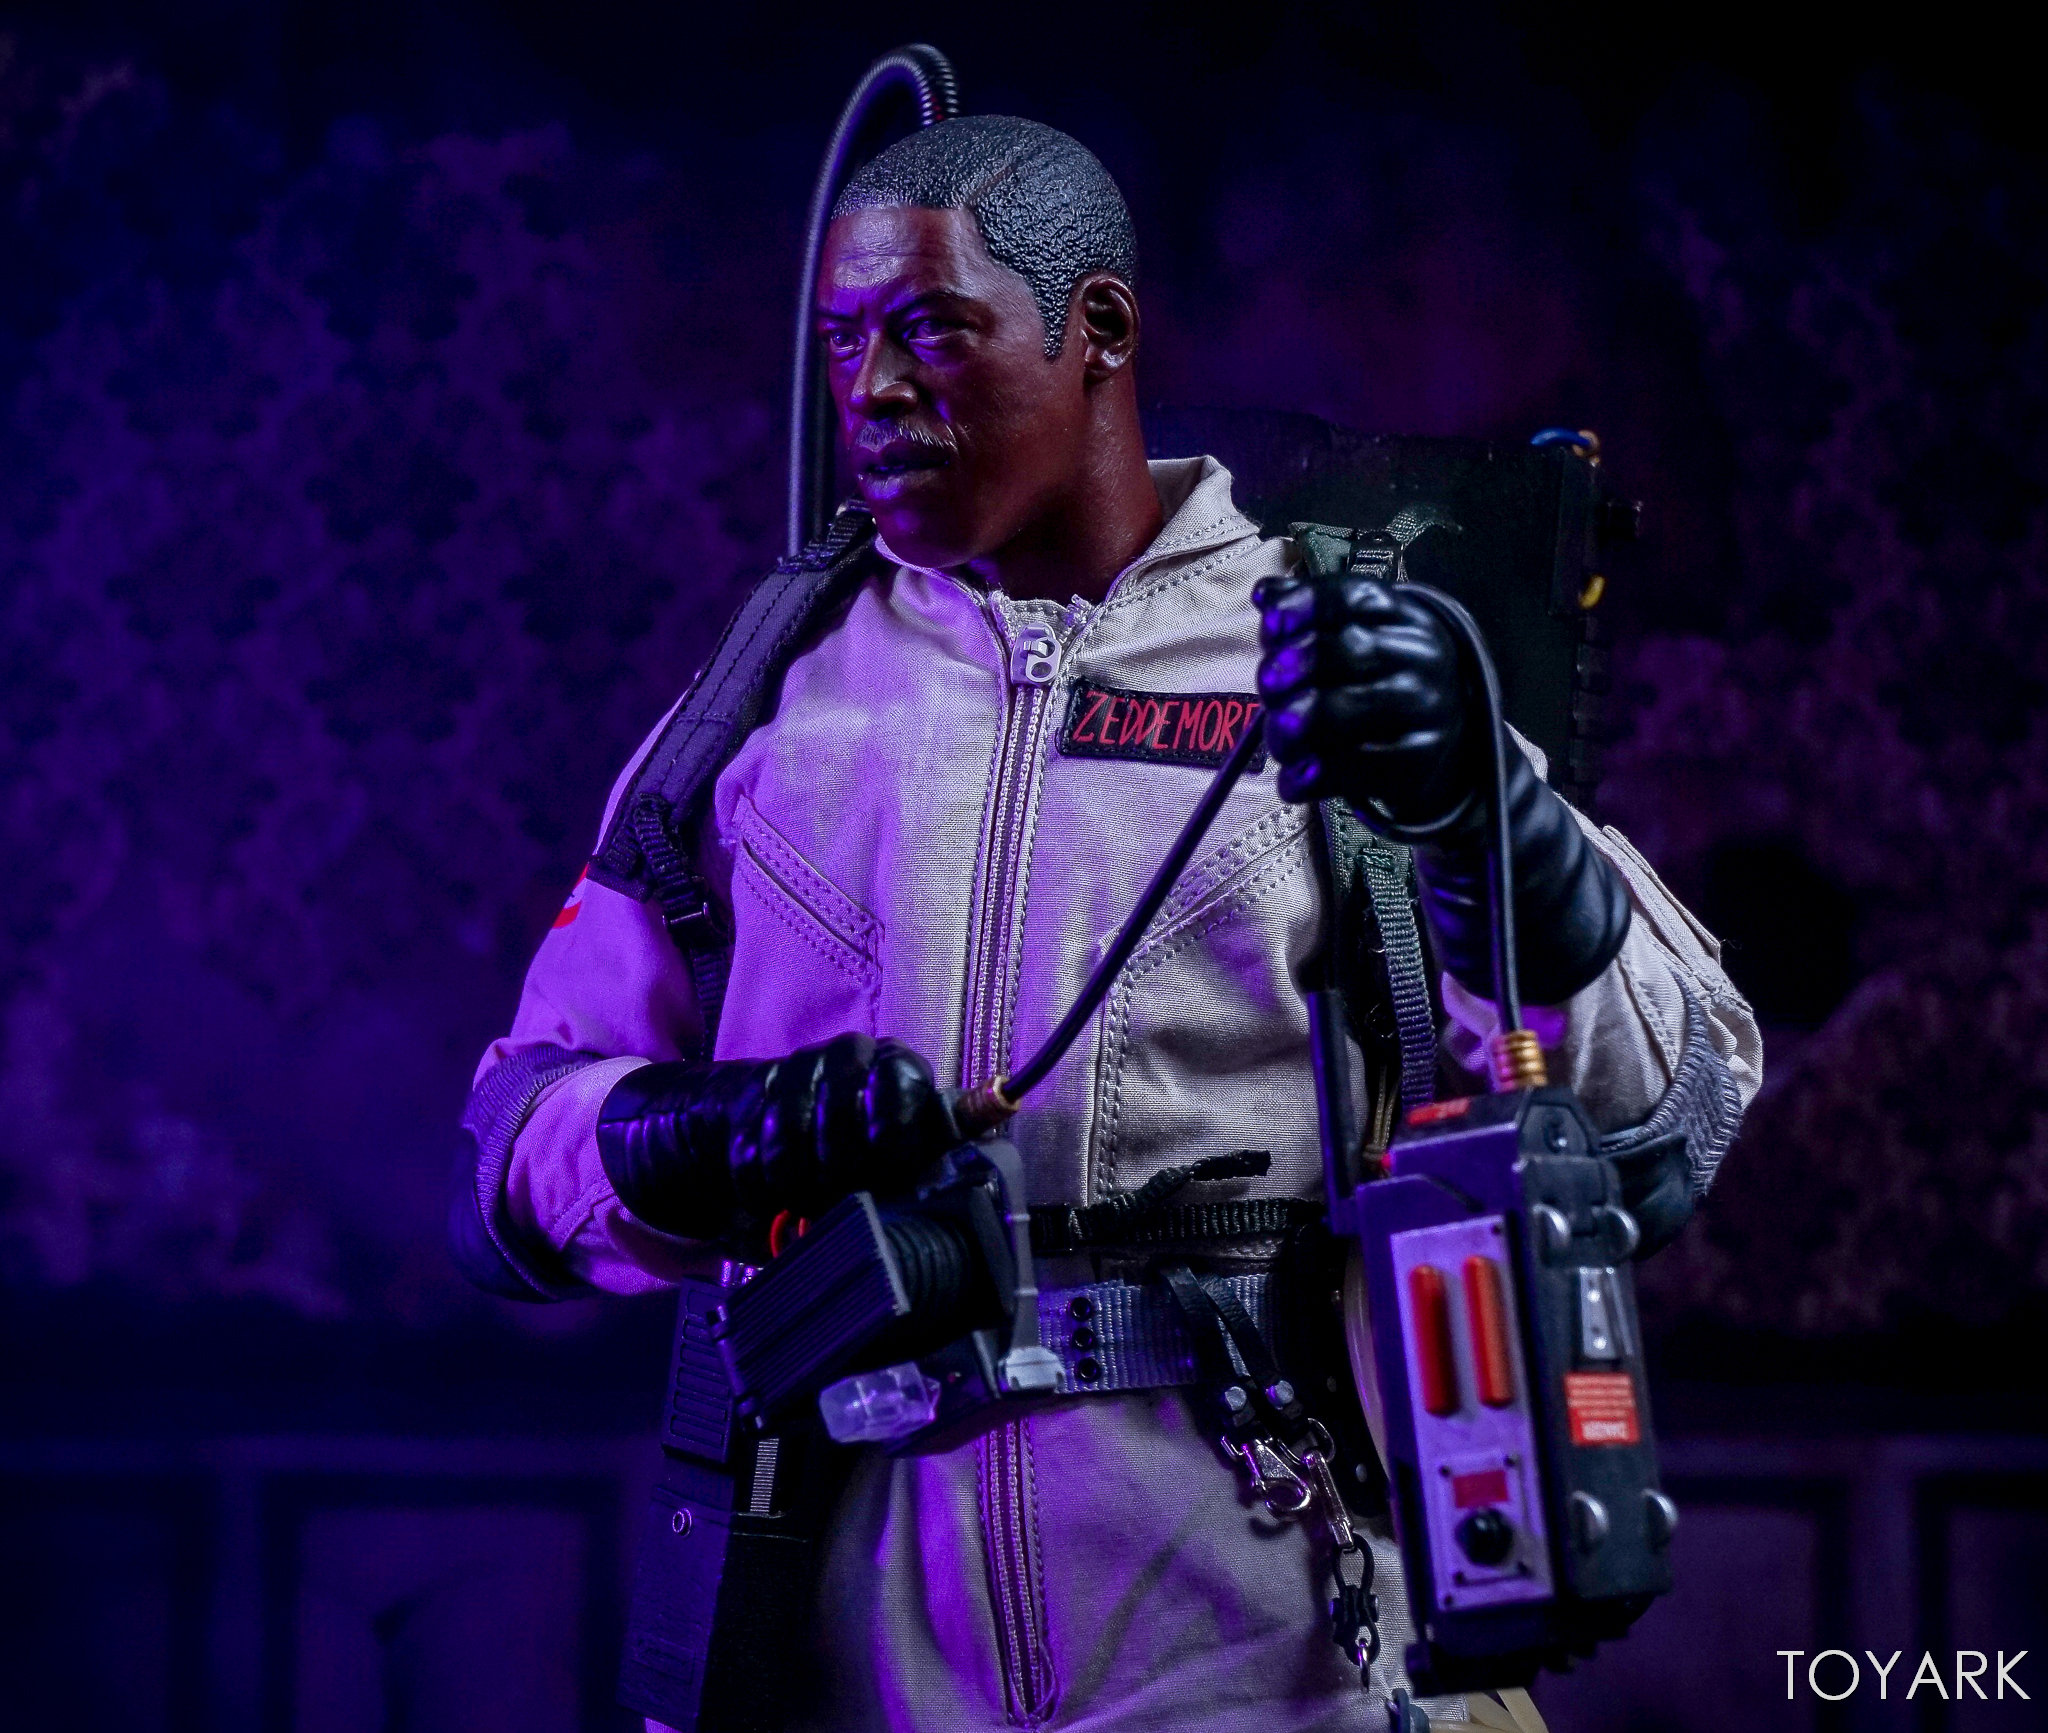 http://news.toyark.com/wp-content/uploads/sites/4/2017/10/Blitzway-Ghostbusters-Special-Set-191.jpg